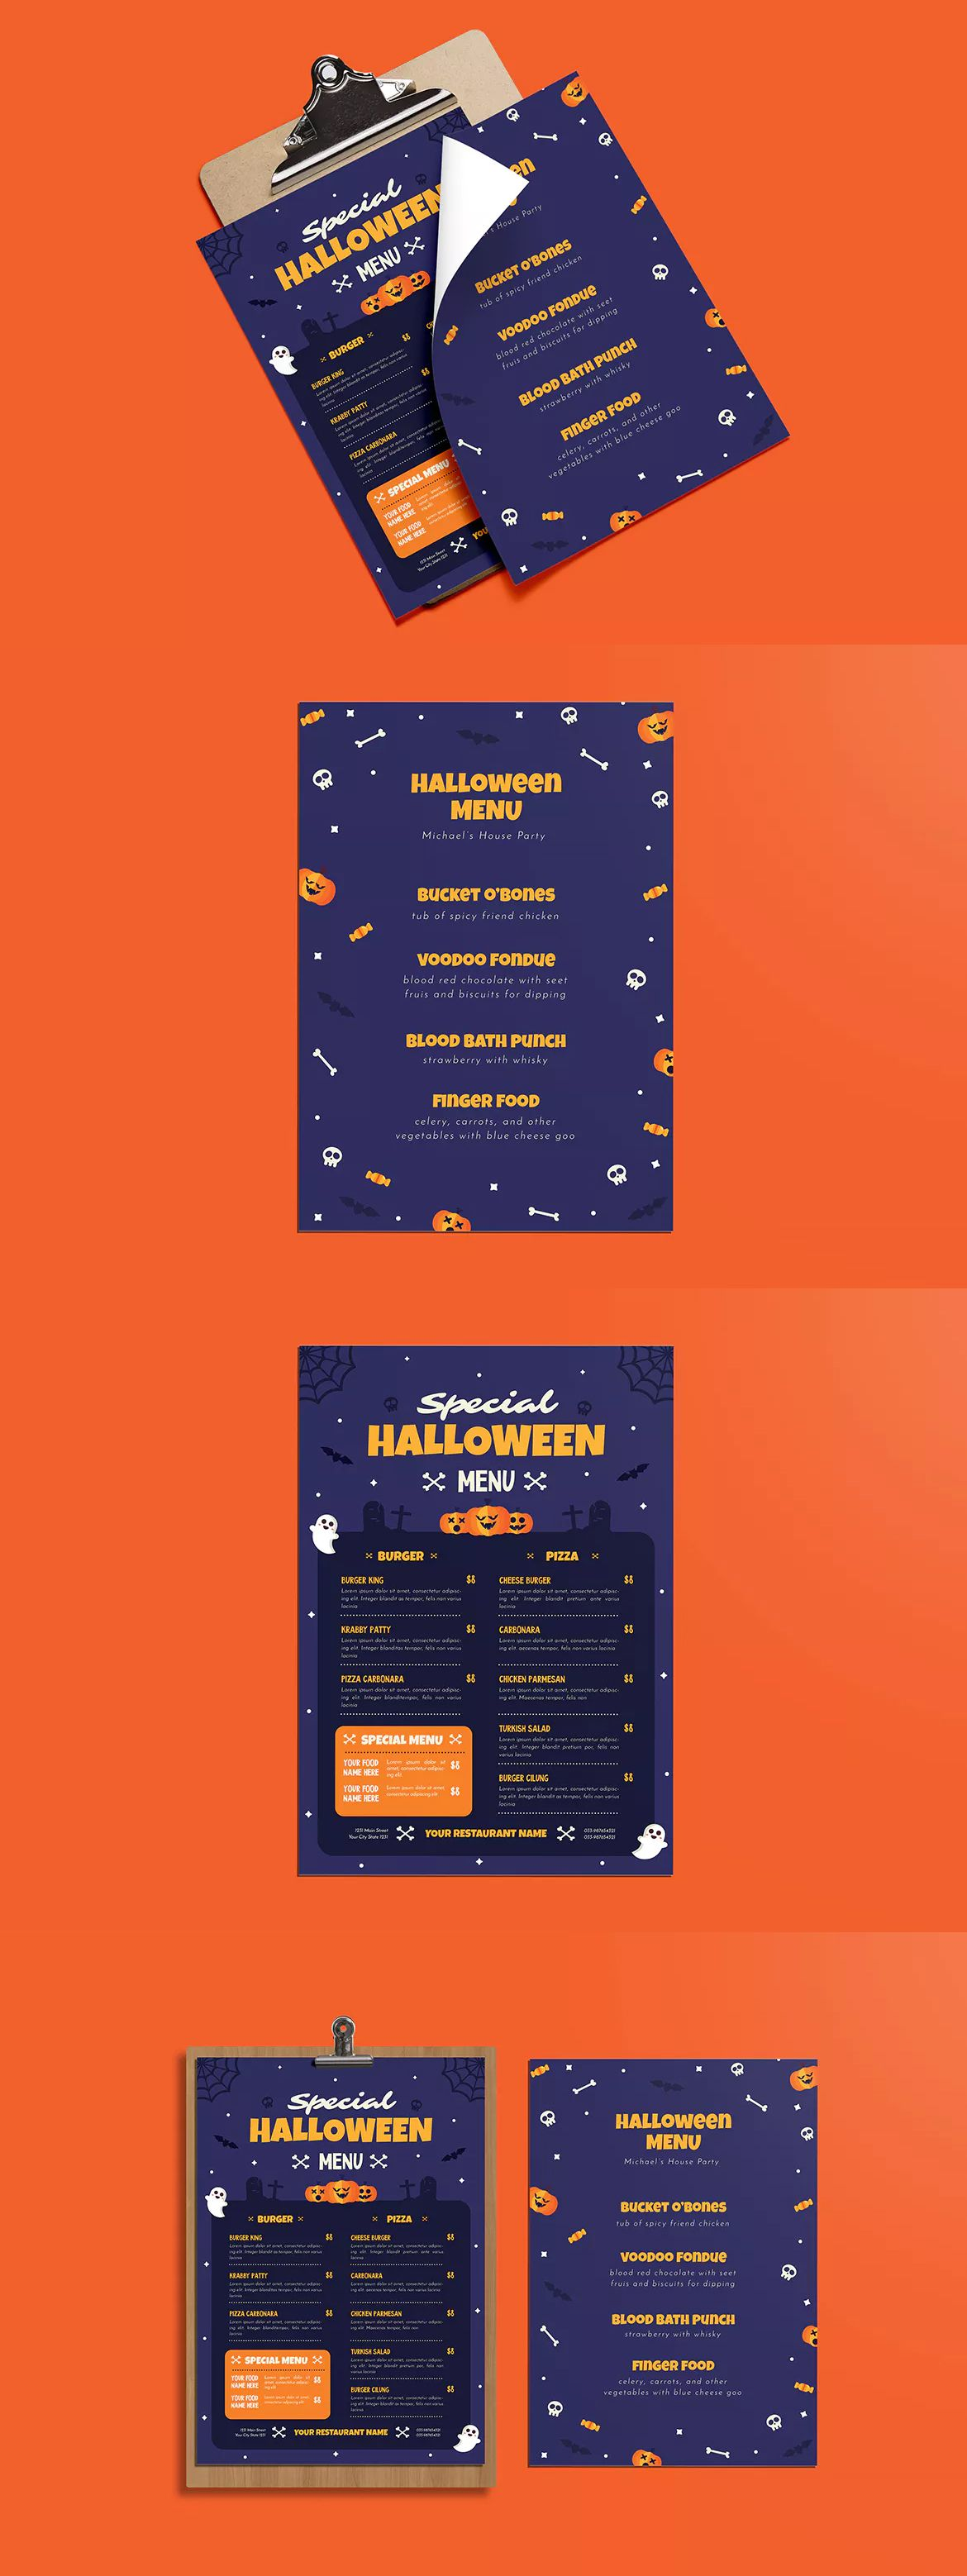 Special Halloween Menus Template AI PSD A4 unlimited s